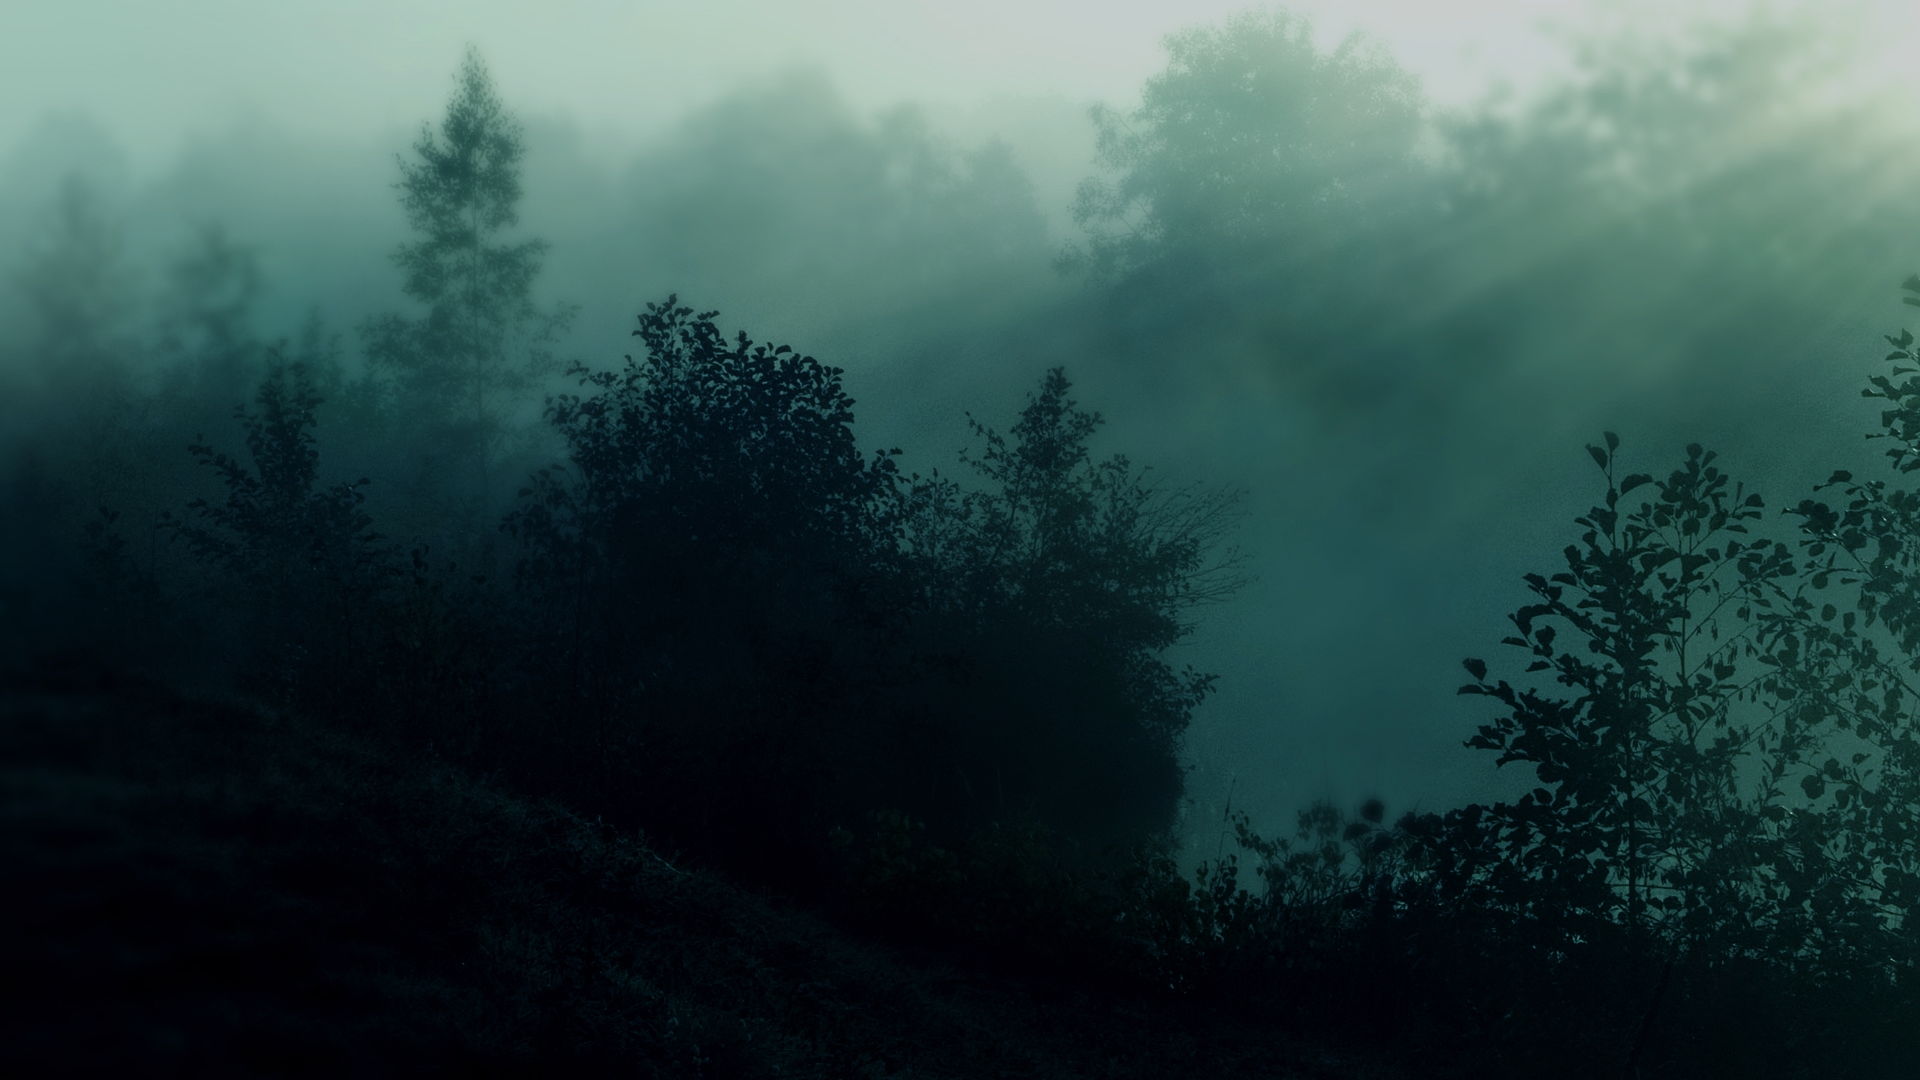 dark nature wallpaper Download Wallpaper Nature Trees